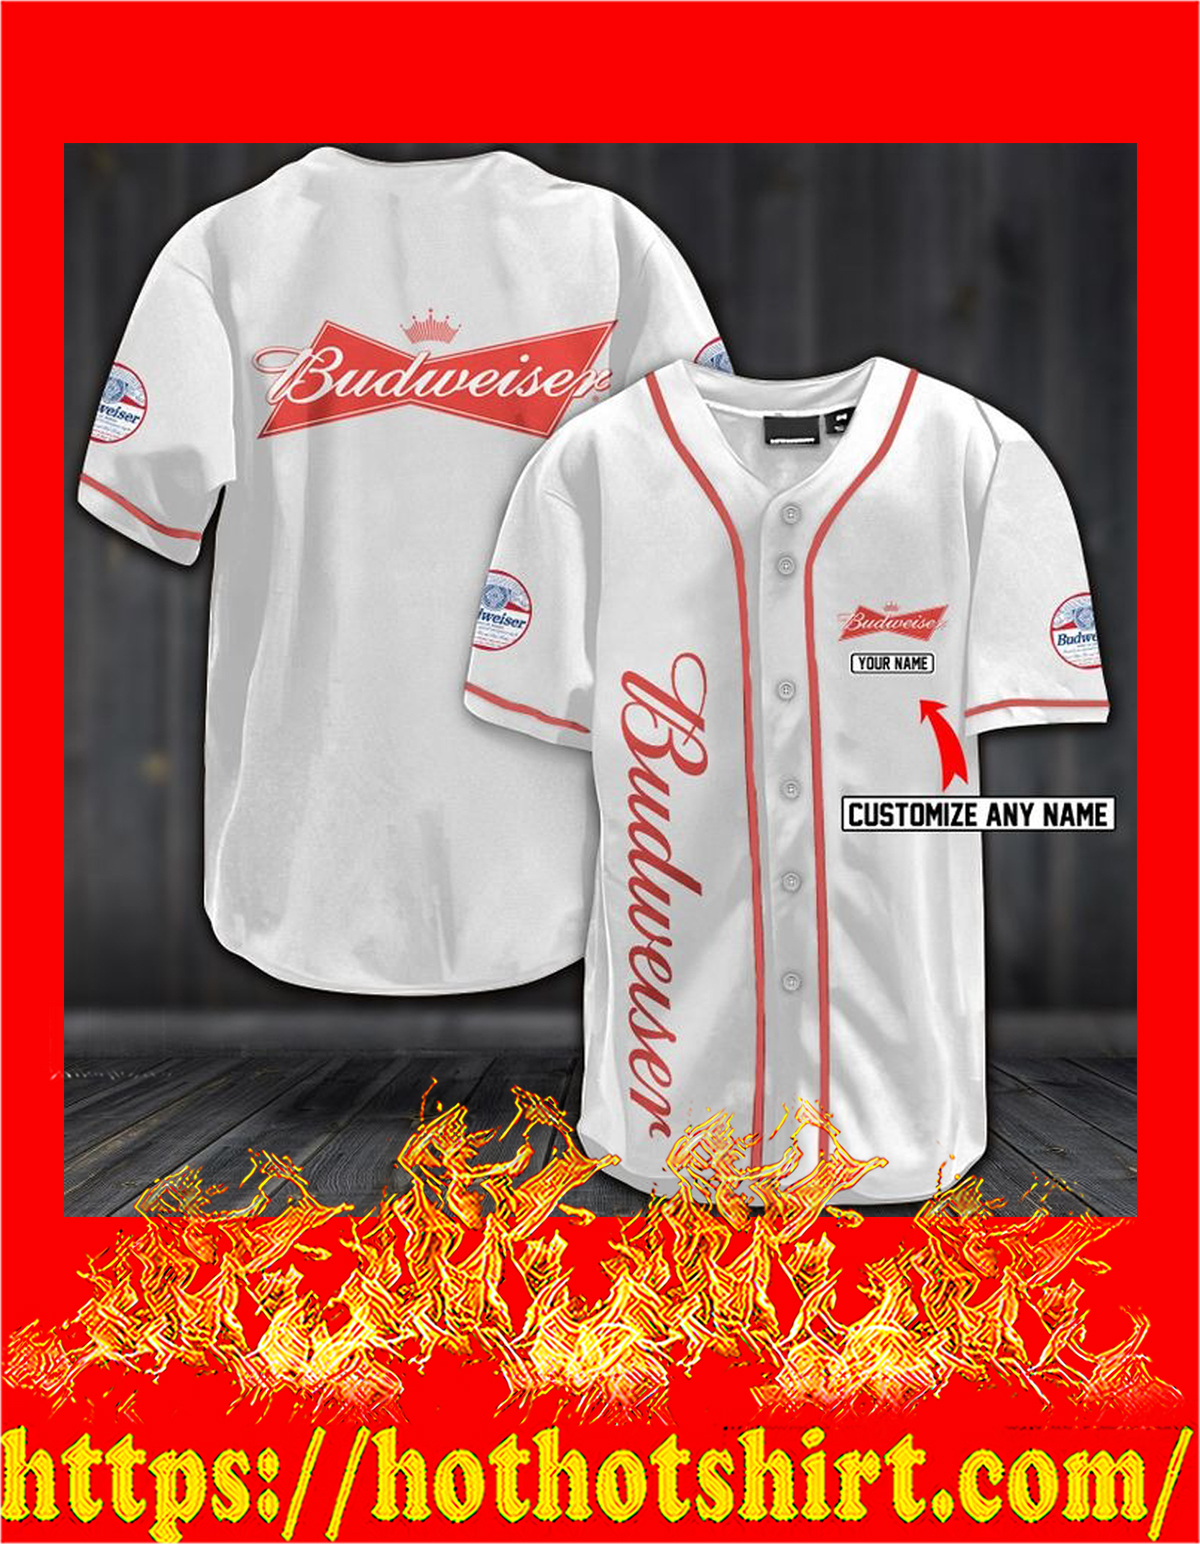 Personalize custom name budweiser hawaiian shirt - pic 2